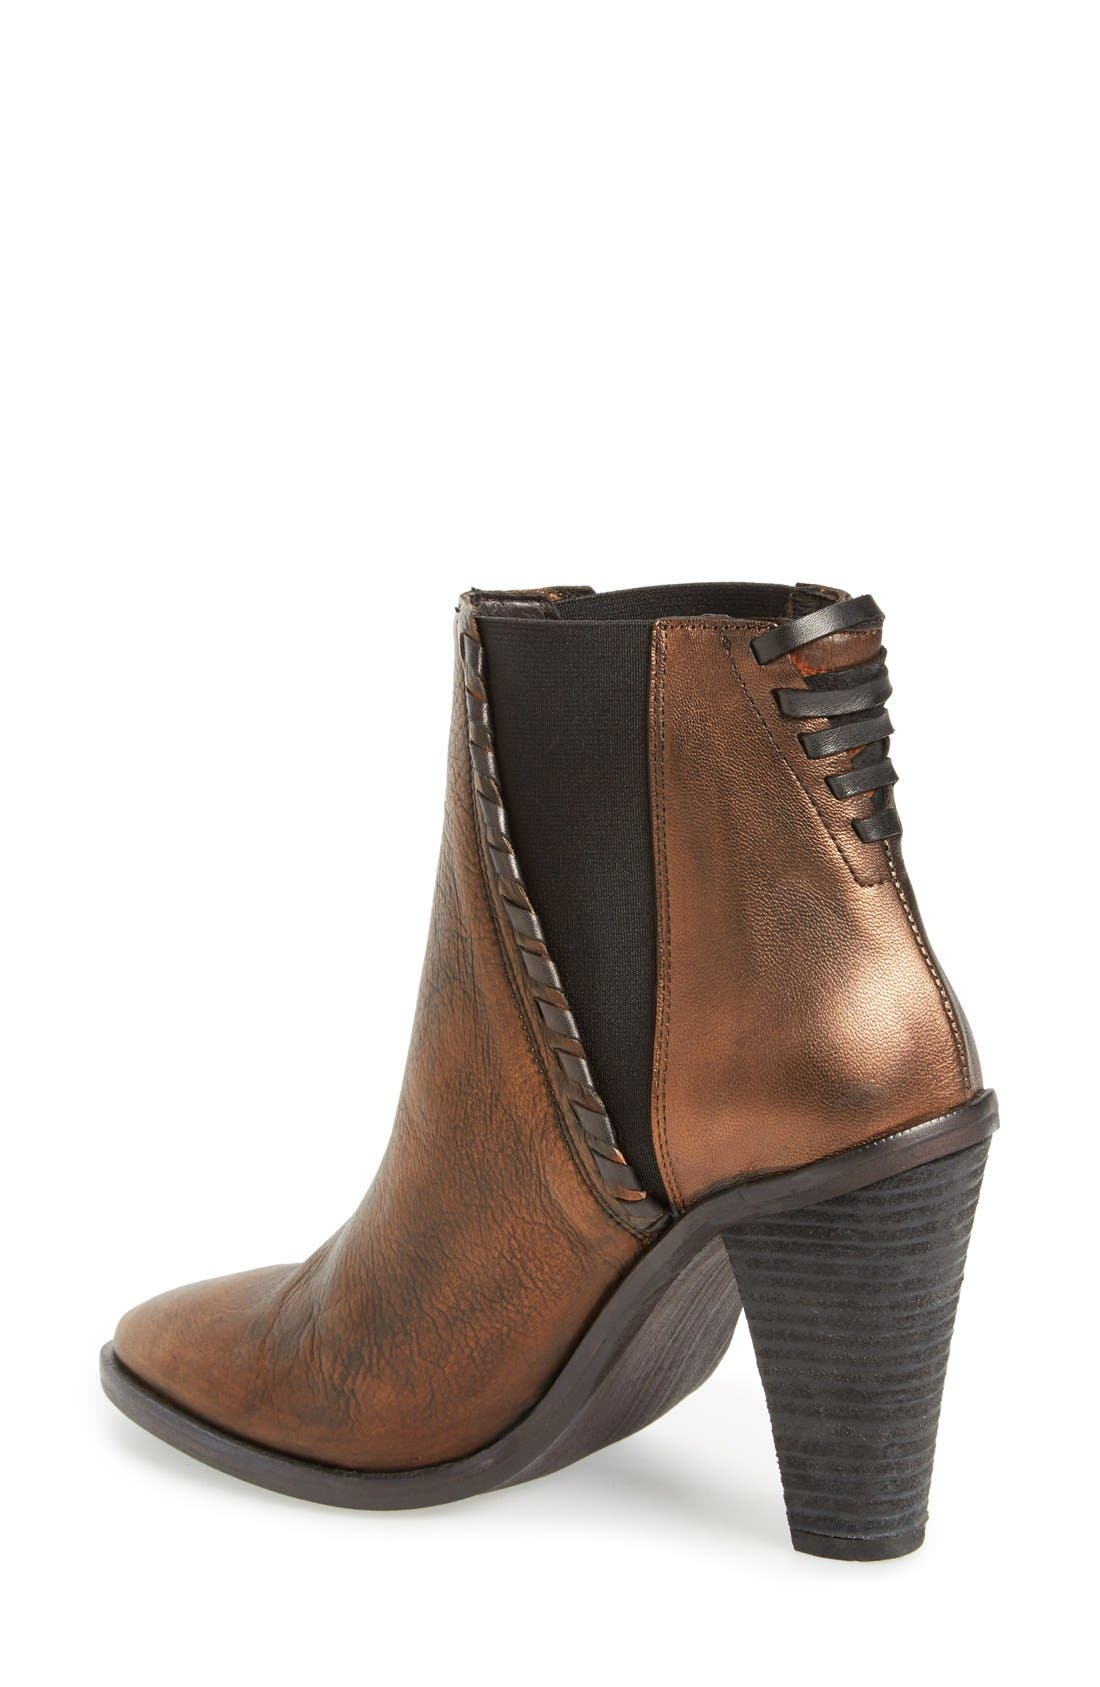 'Stardust' Chelsea Boot,                             Alternate thumbnail 2, color,                             Brown/ Bronze Leather